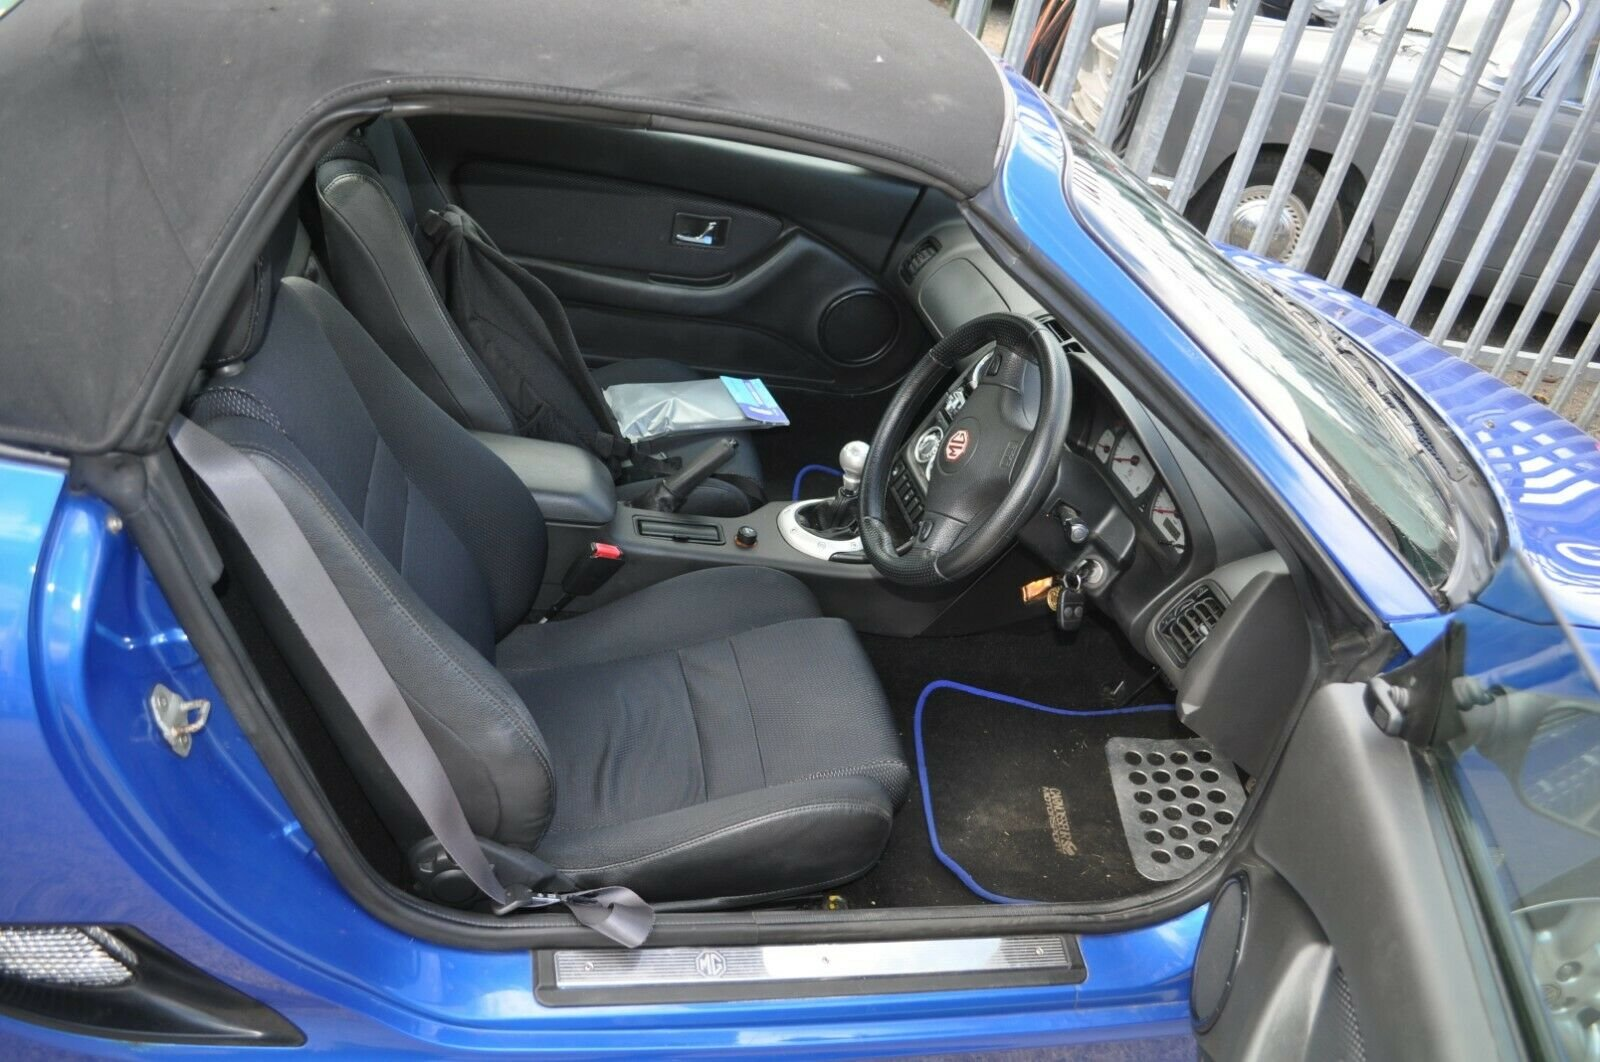 2002 MG TF TROPHY BLUE MOT 43000 MILES VERY GOOD CONDITION For Sale (picture 5 of 6)